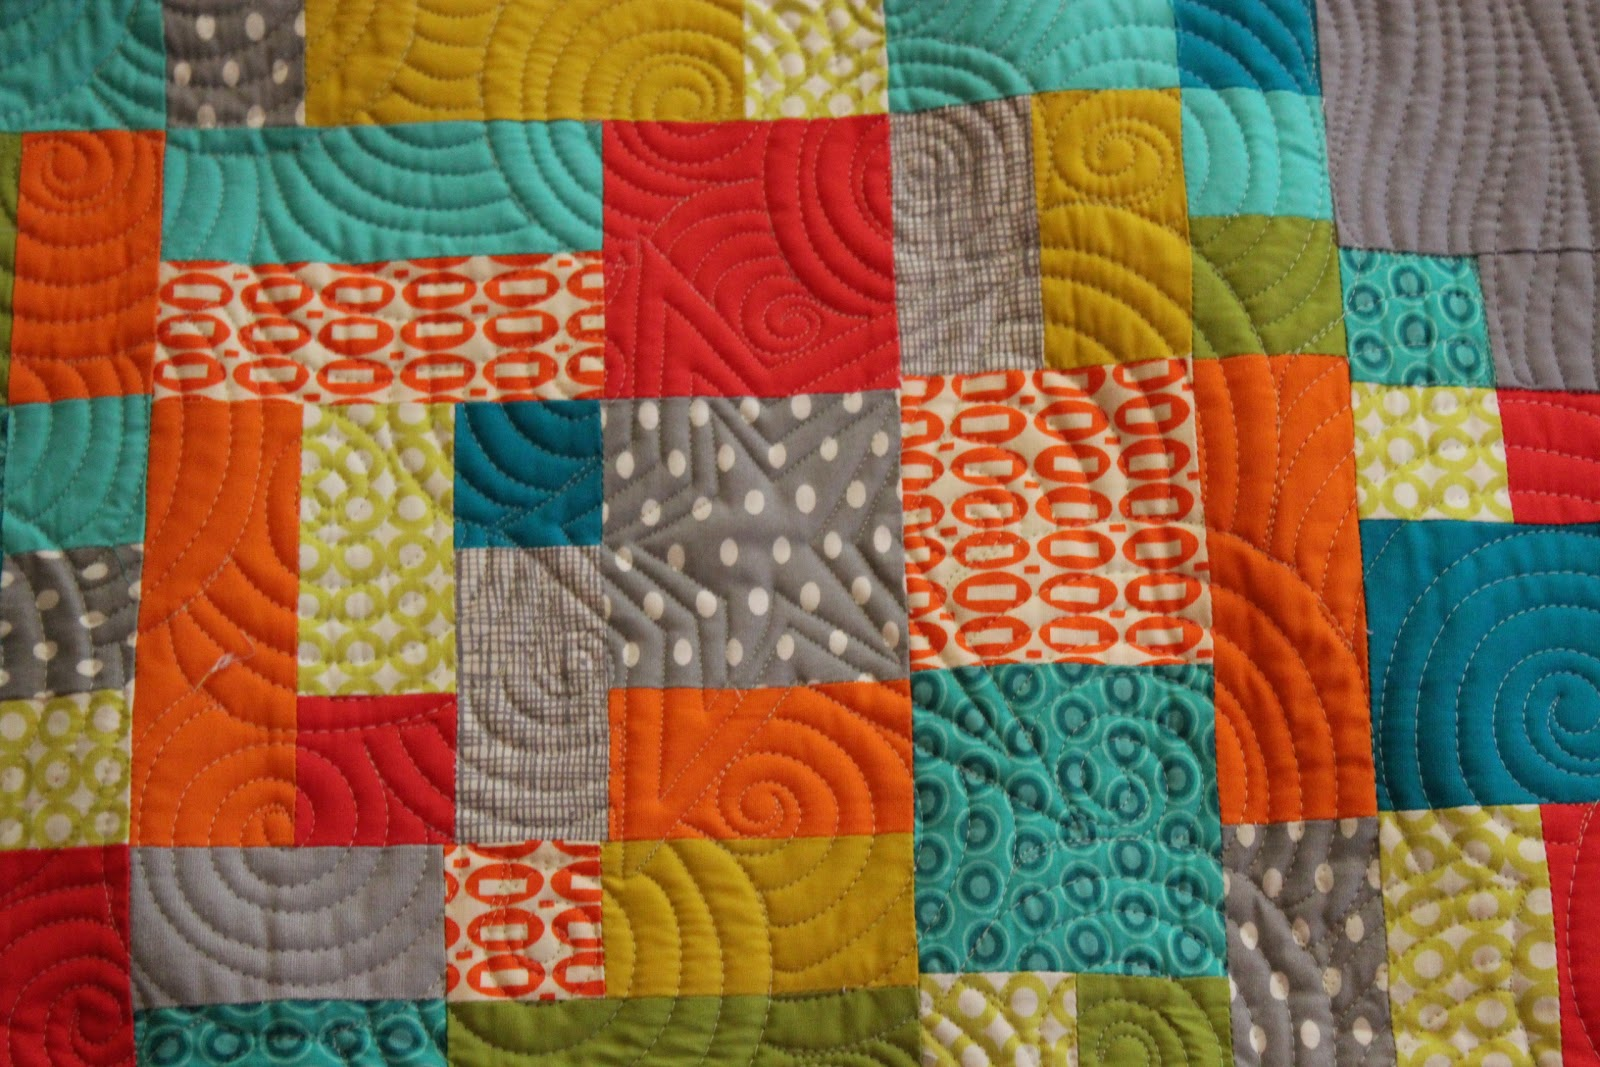 Background poster pics background quilting designs background quilting designs5 toneelgroepblik Image collections